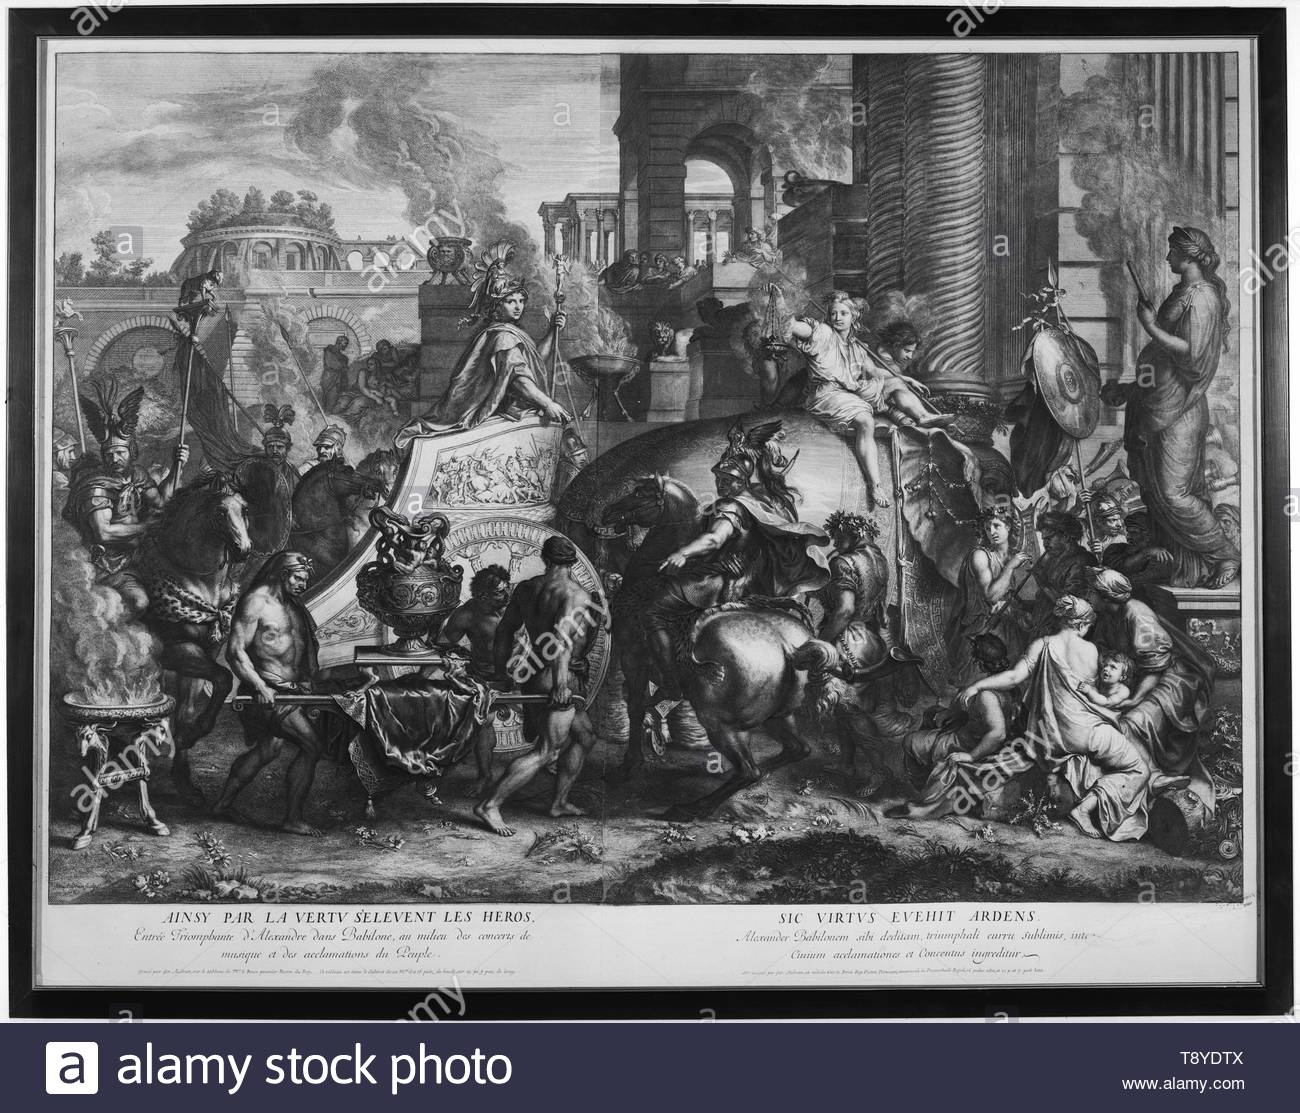 Audran, Girard (French, 1640-1703) (author of design) [printmaker]-Entry of Alexander into Babylon, Image 1 - Stock Image